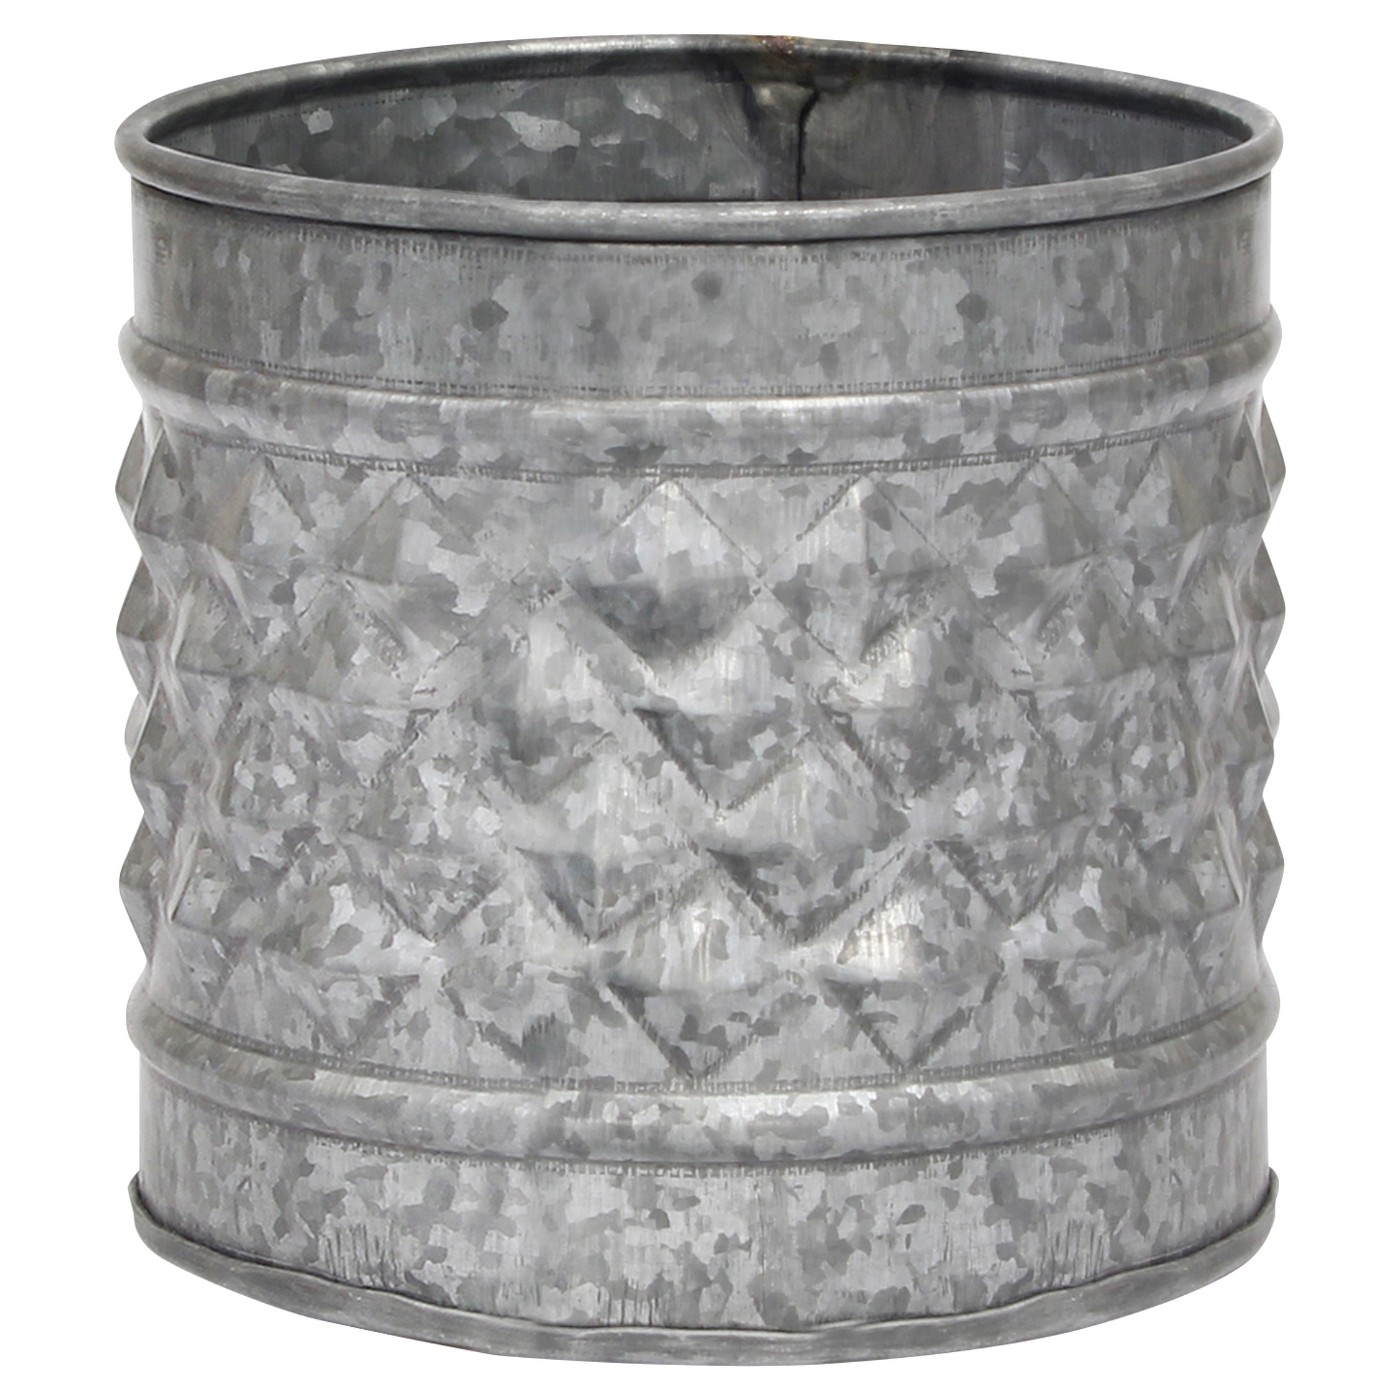 Stonebriar Antique Galvanized Metal Farmhouse Planter - image 1 of 5